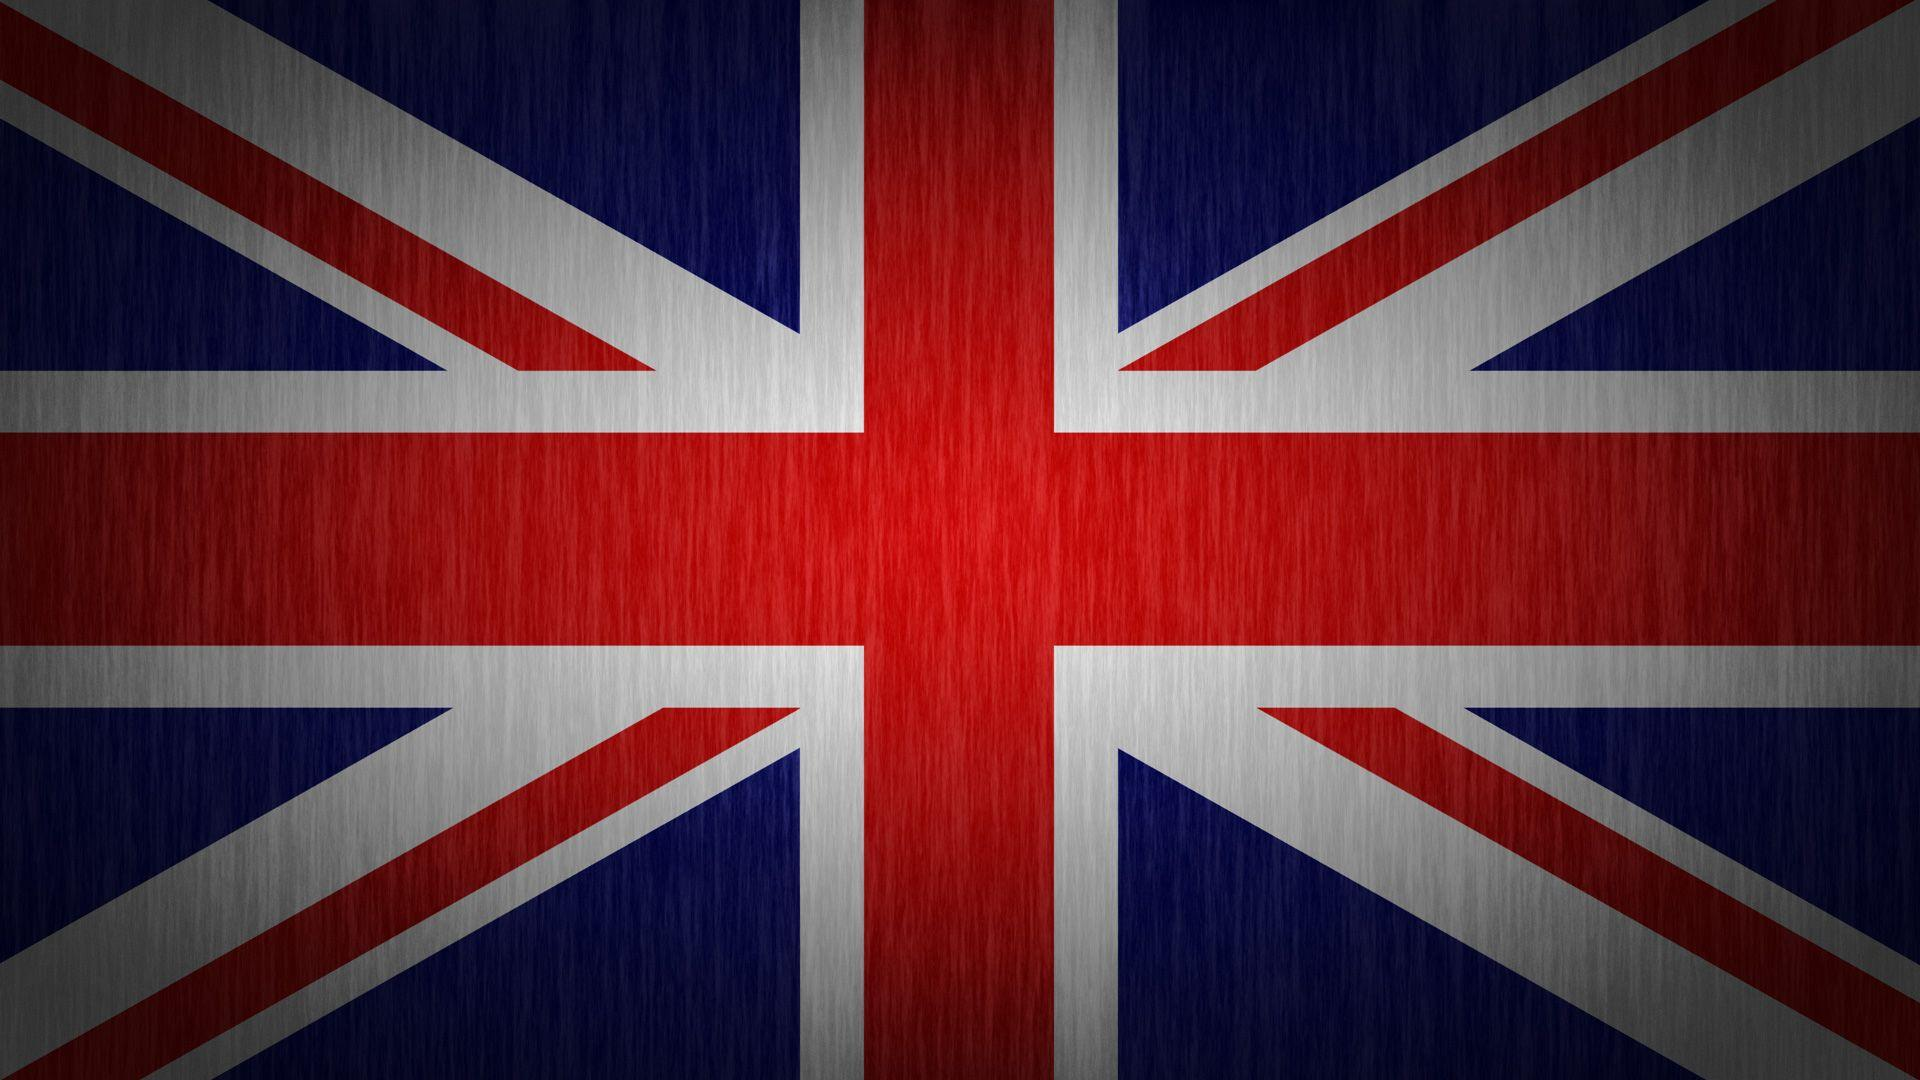 British United Kingdom Flag HD Wallpaper of Flag - hdwallpaper2013.com